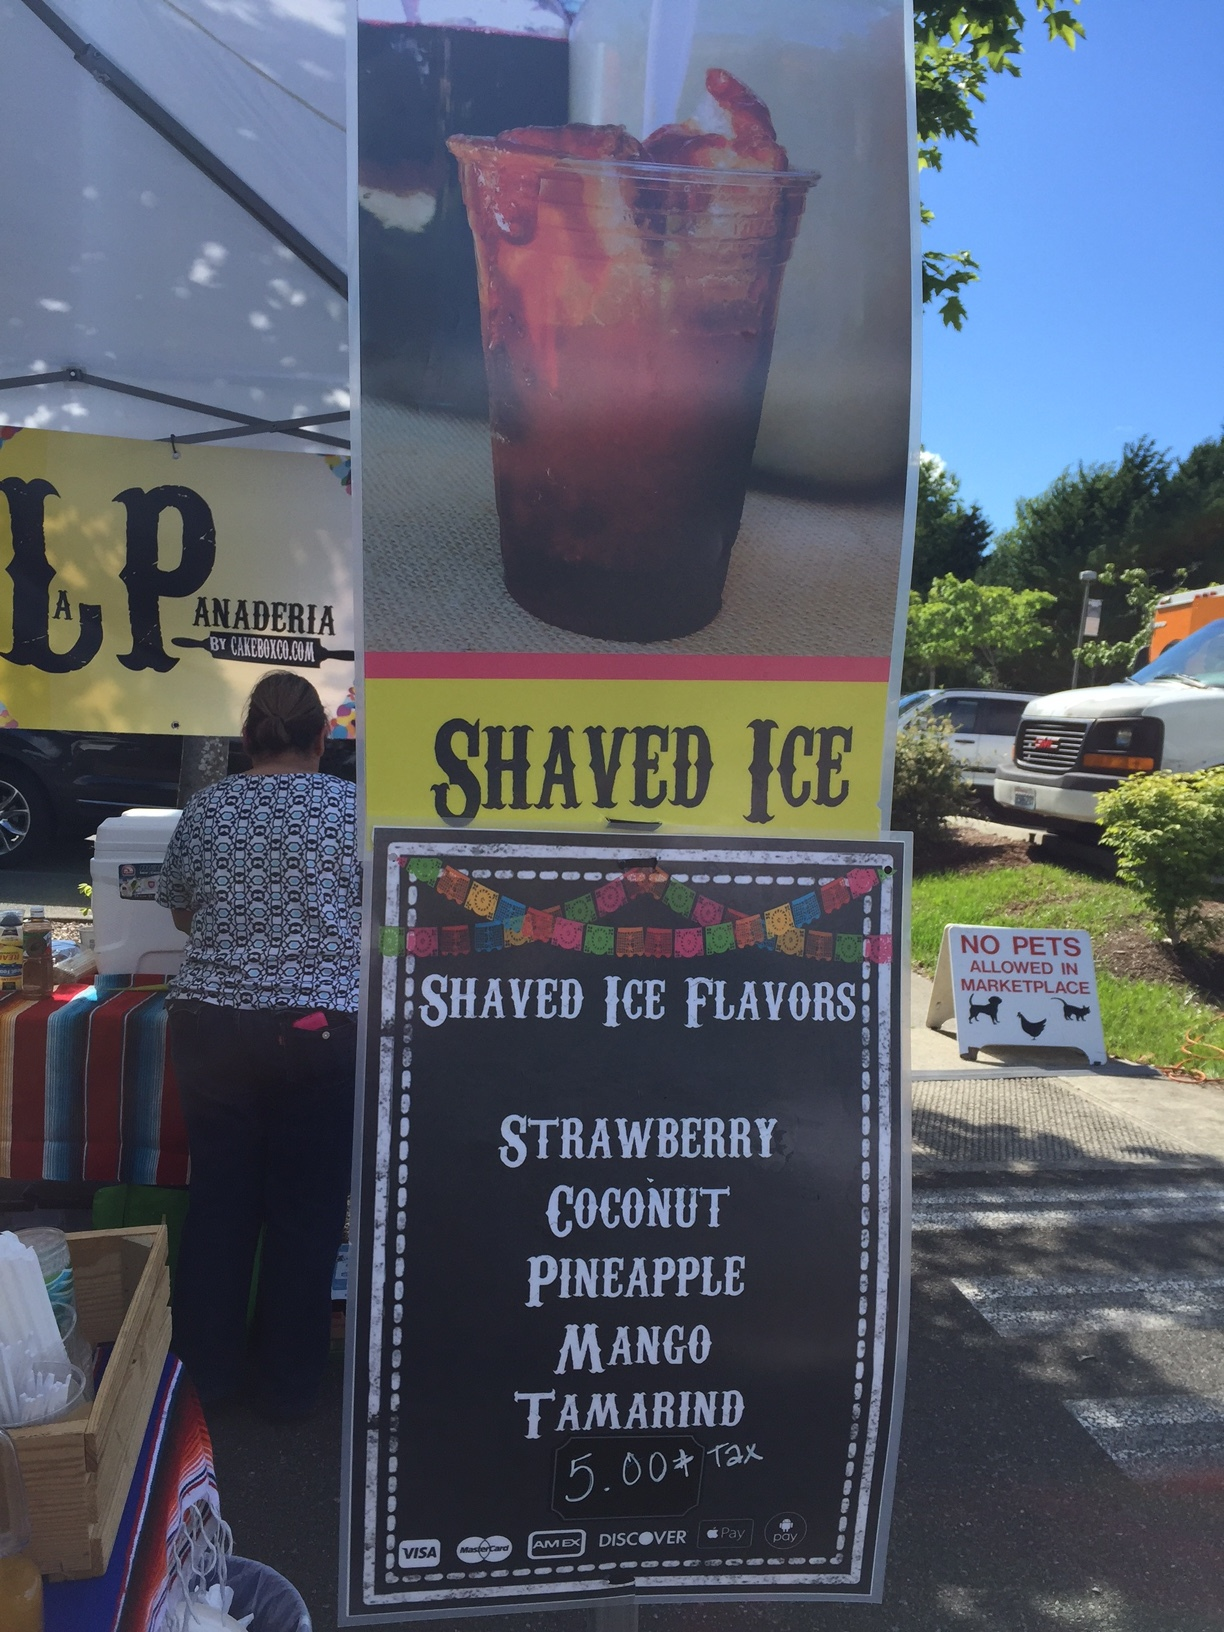 I'd put the ice consistence as in between shaved ice and a snow cone